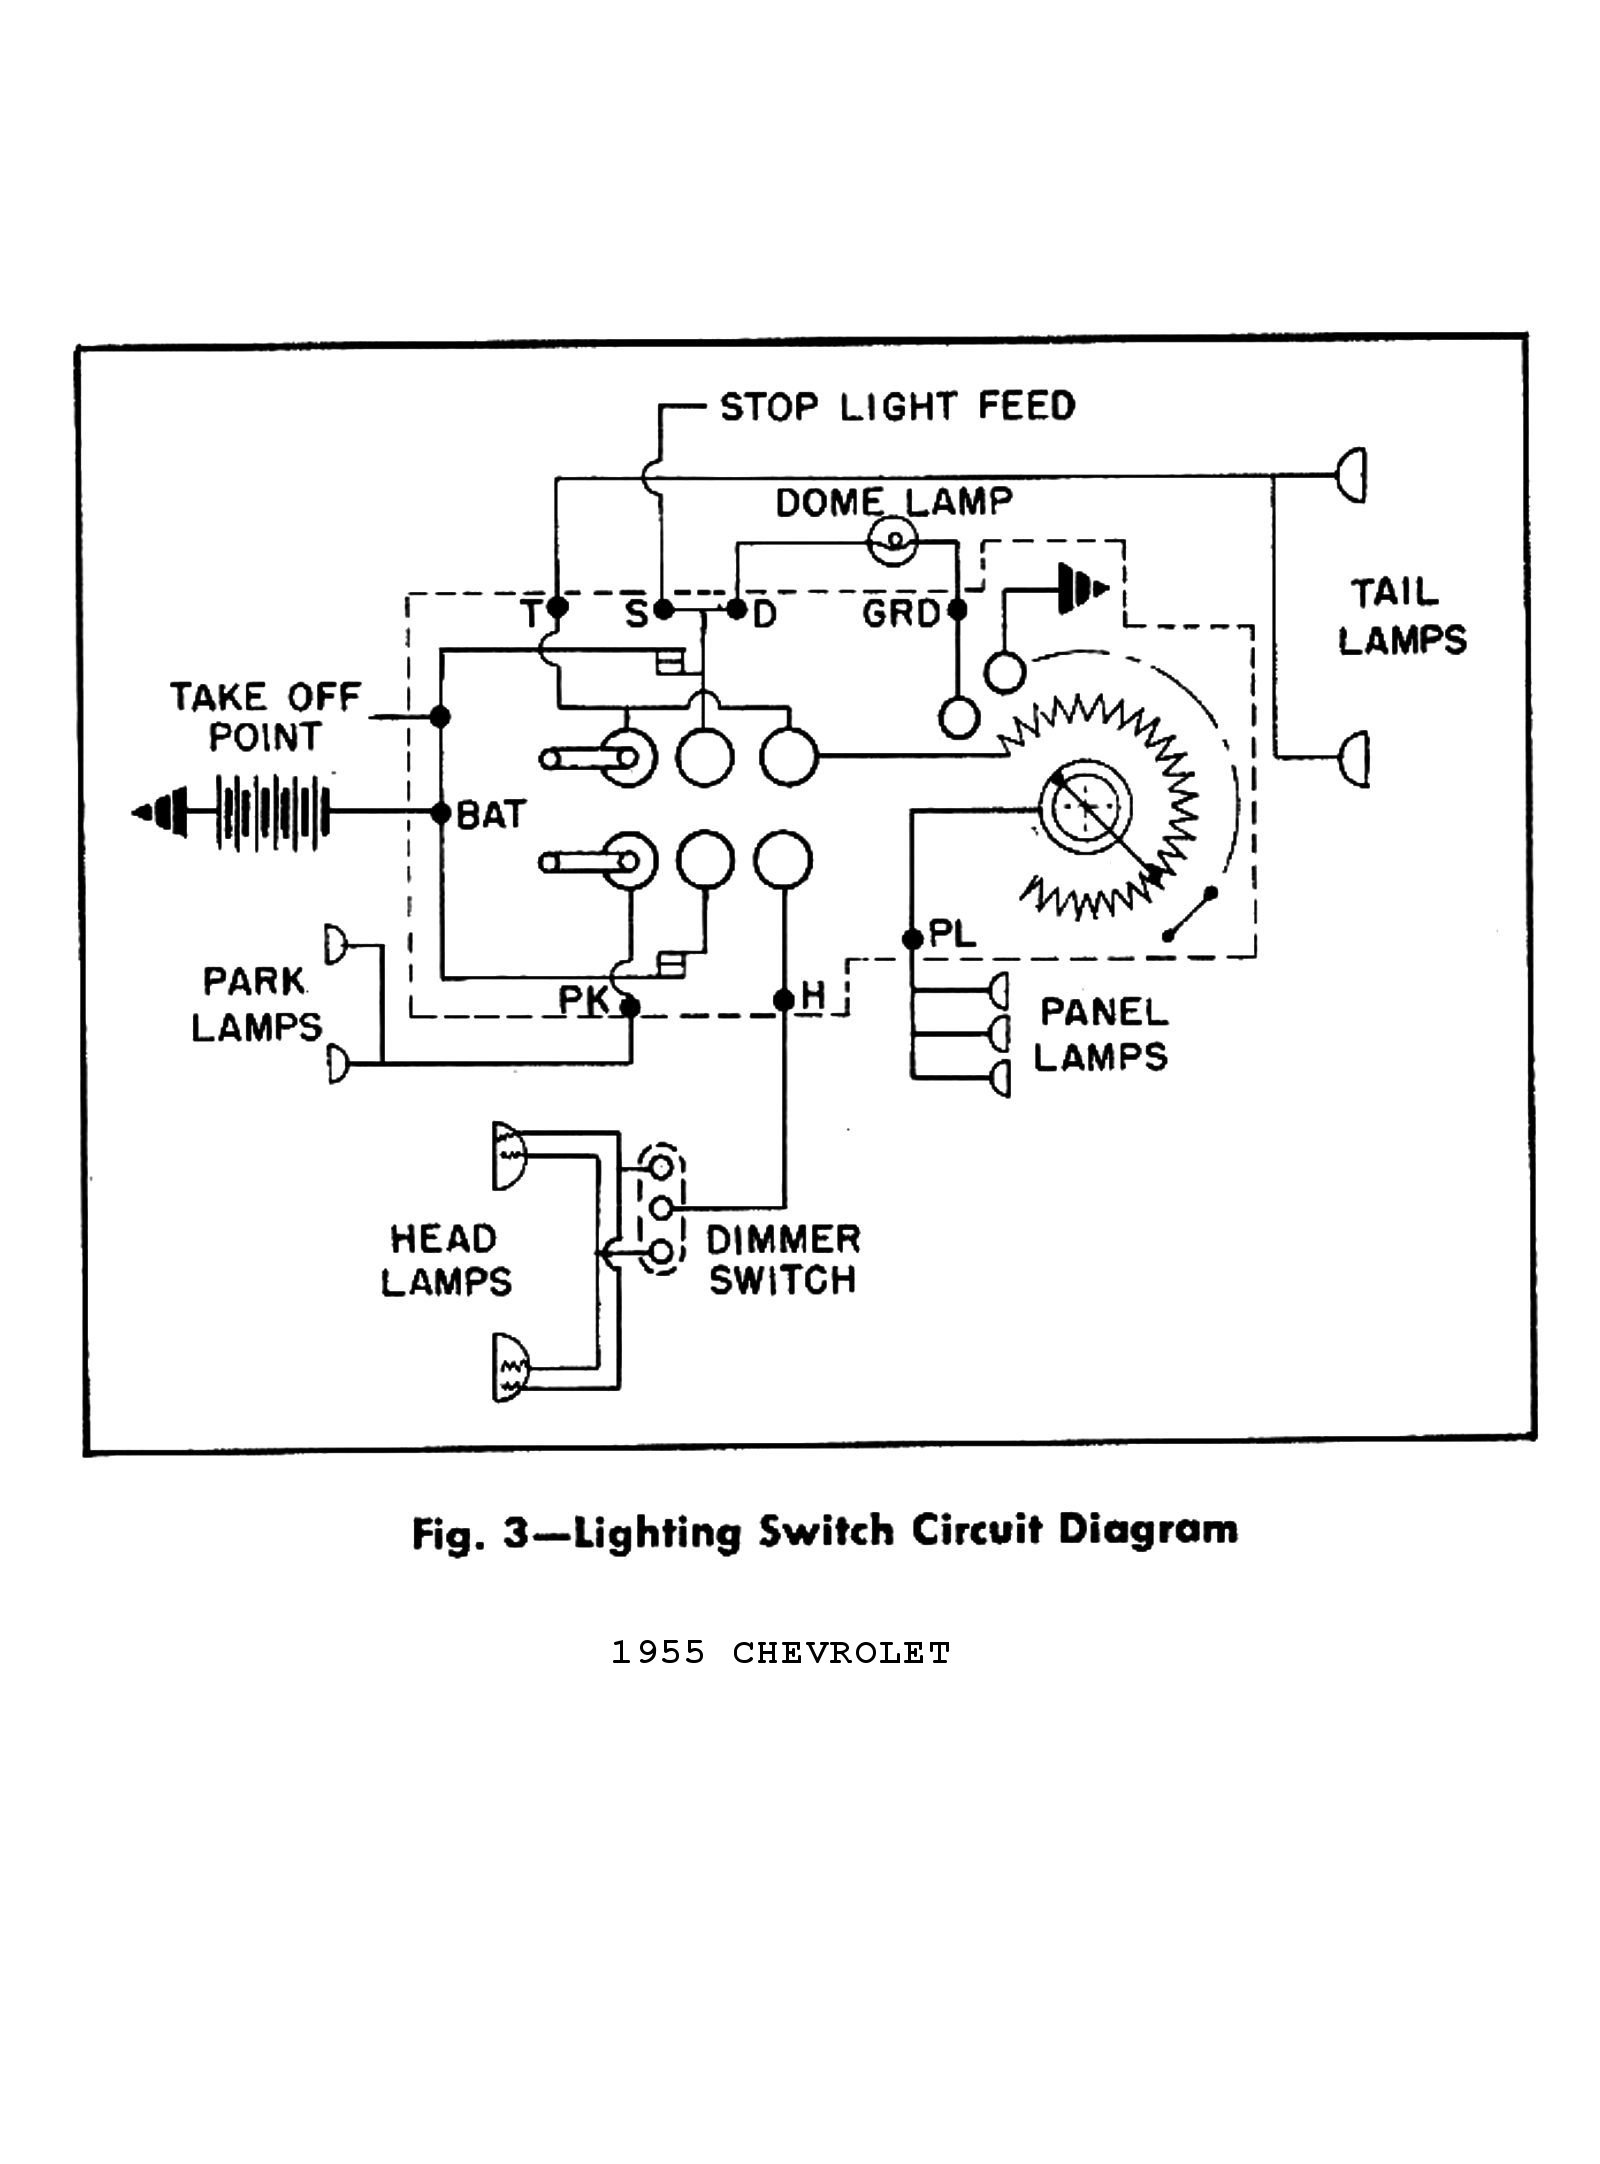 2001 Subaru Outback Stereo Wiring Diagram from chevy.oldcarmanualproject.com